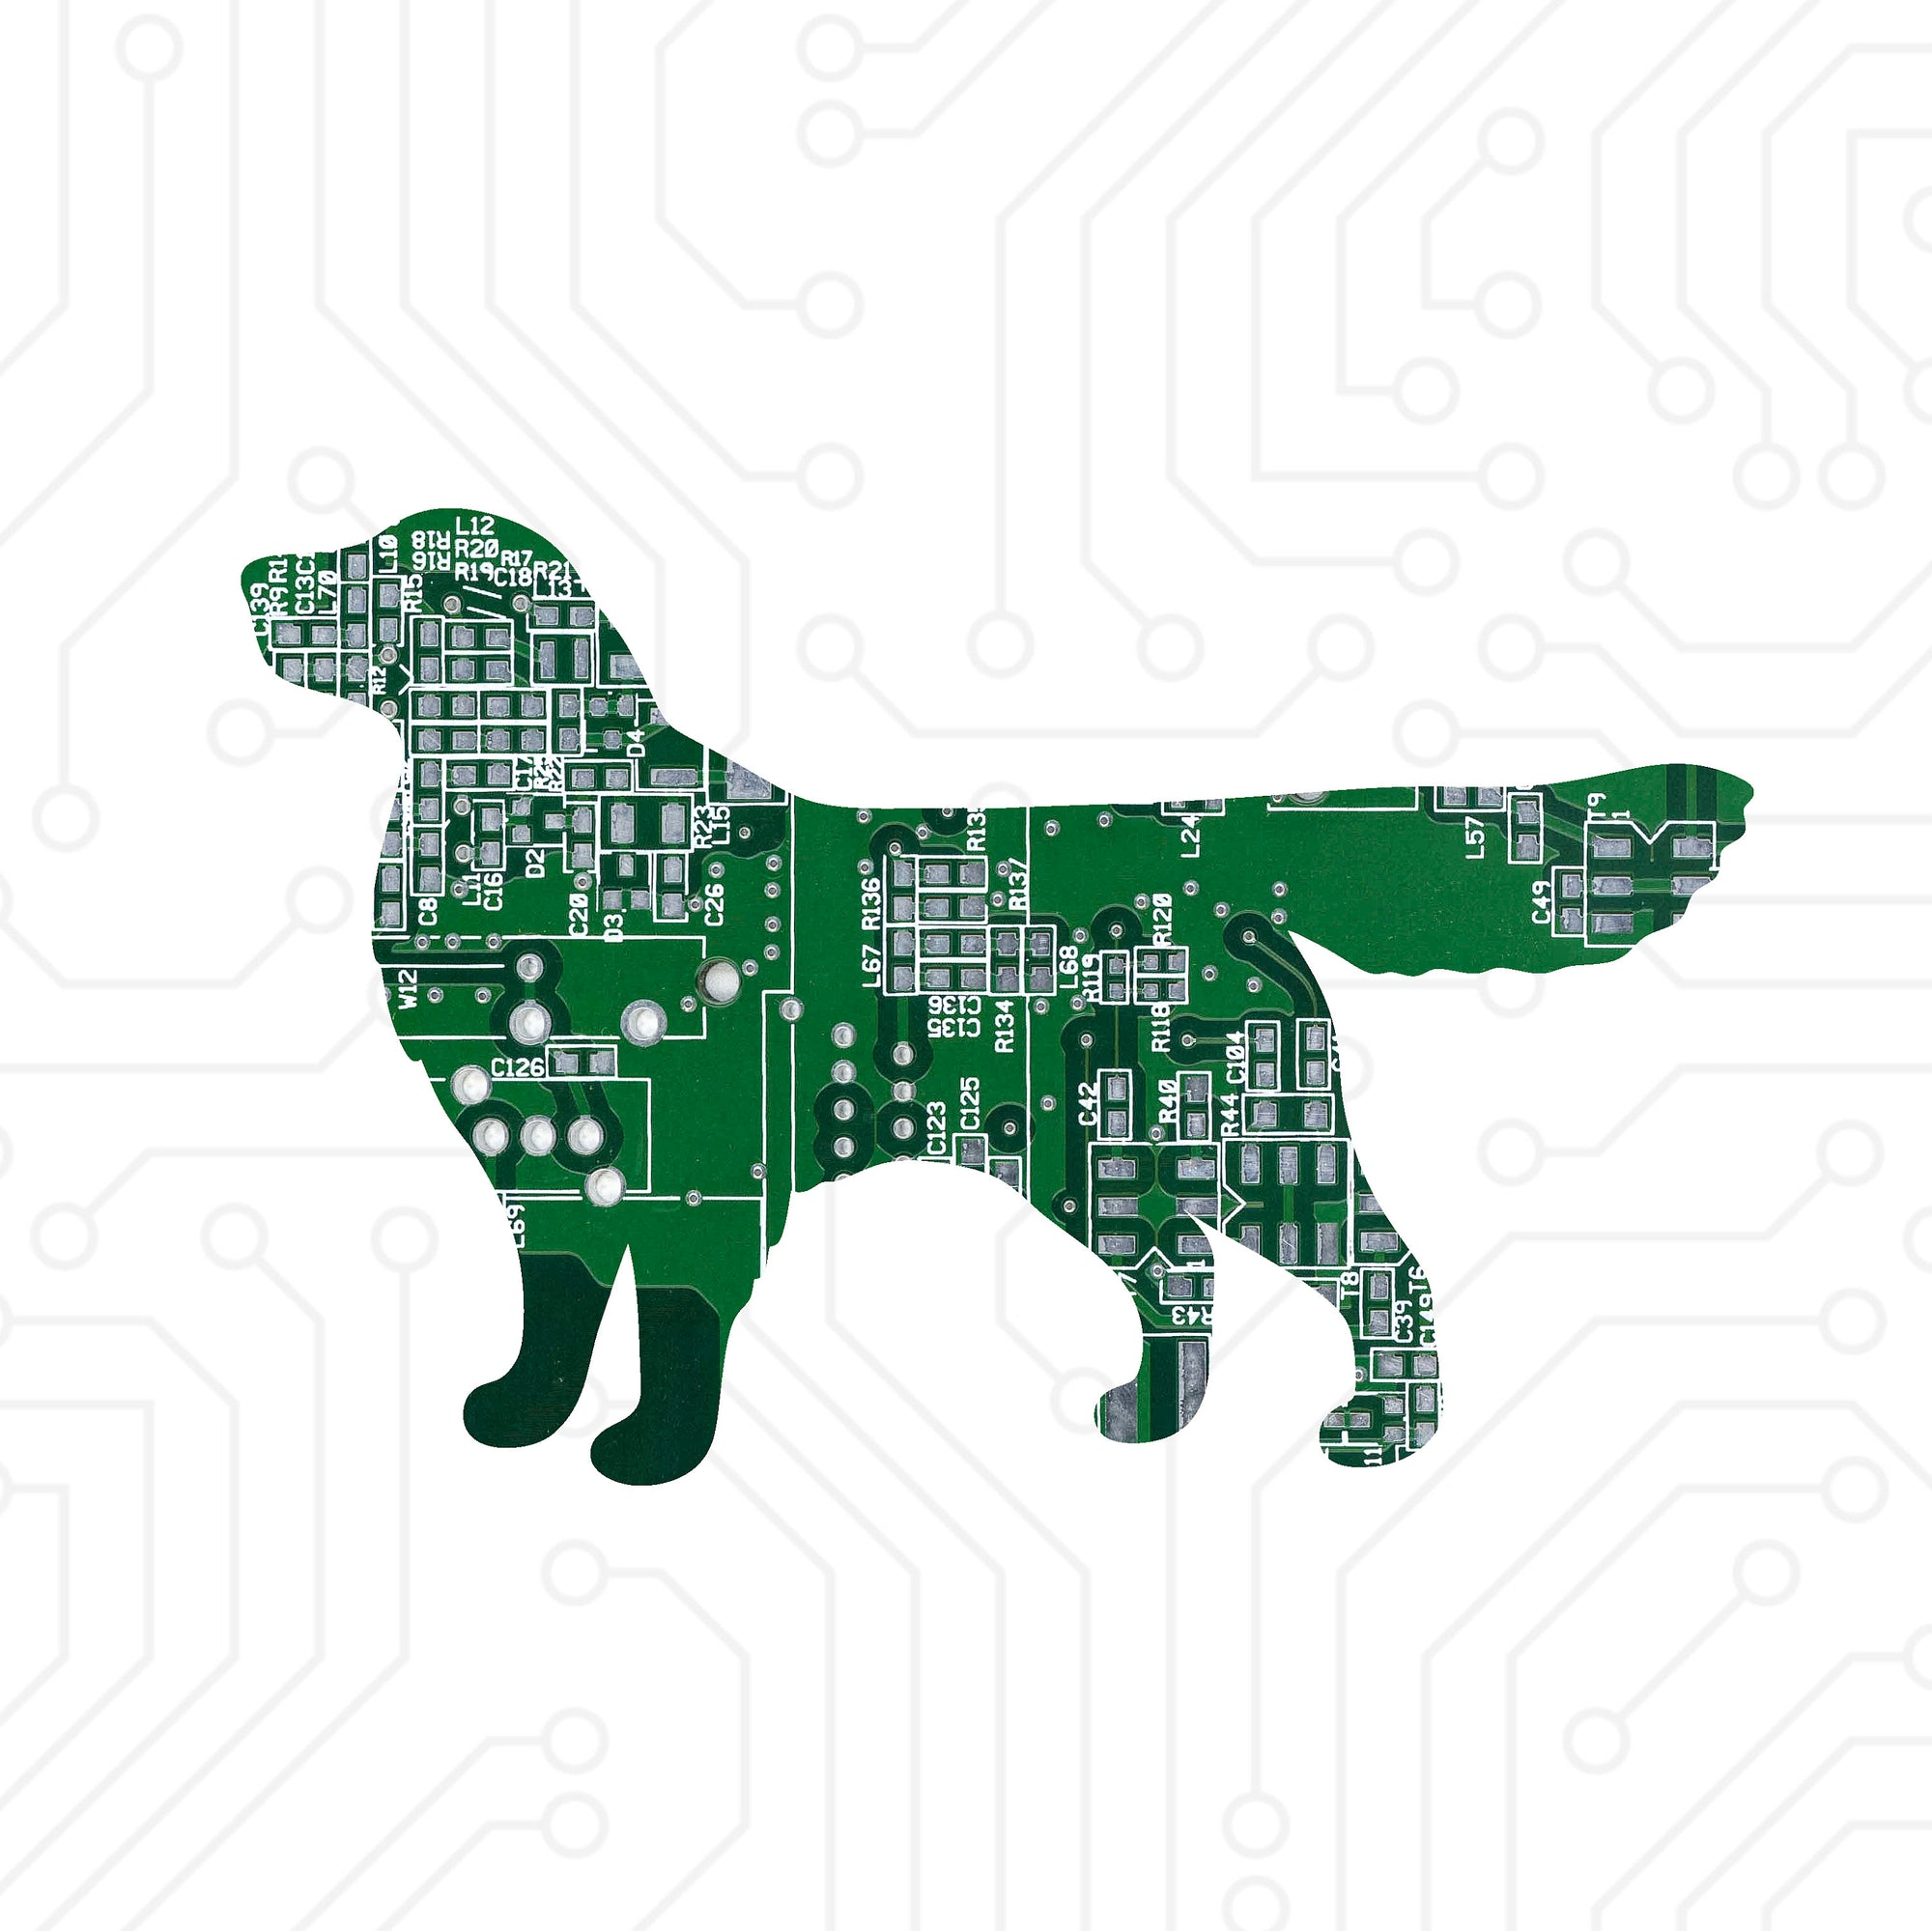 Circuit Board Golden Retriever - TechWears Ltd